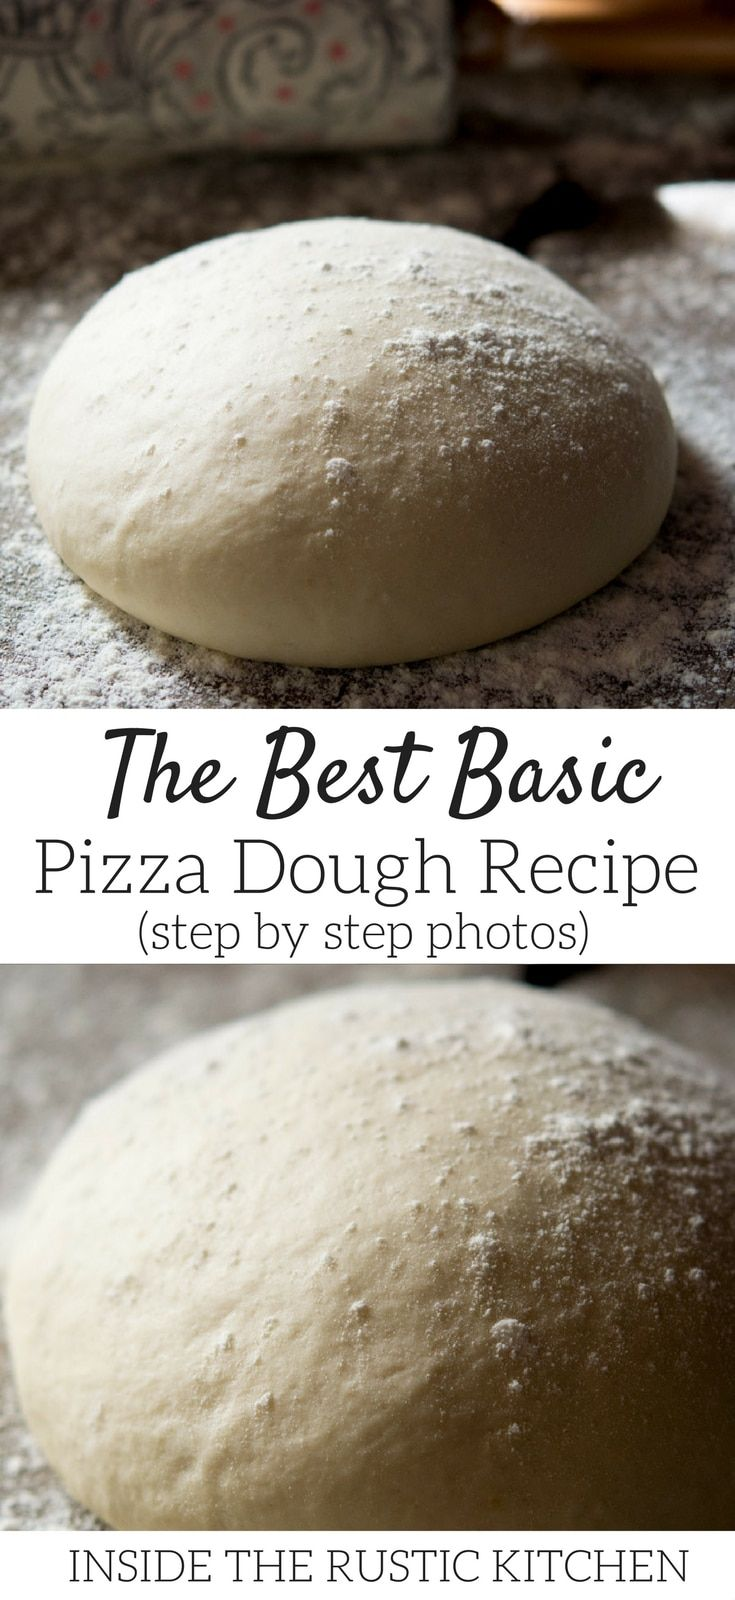 The best basic pizza dough recipe made with very few simple ingredients it's easy and totally foolproof! This is the best dough for making homemade pizzas. Find more authentic Italian recipes at Inside The Rustic Kitchen via @InsideTRK